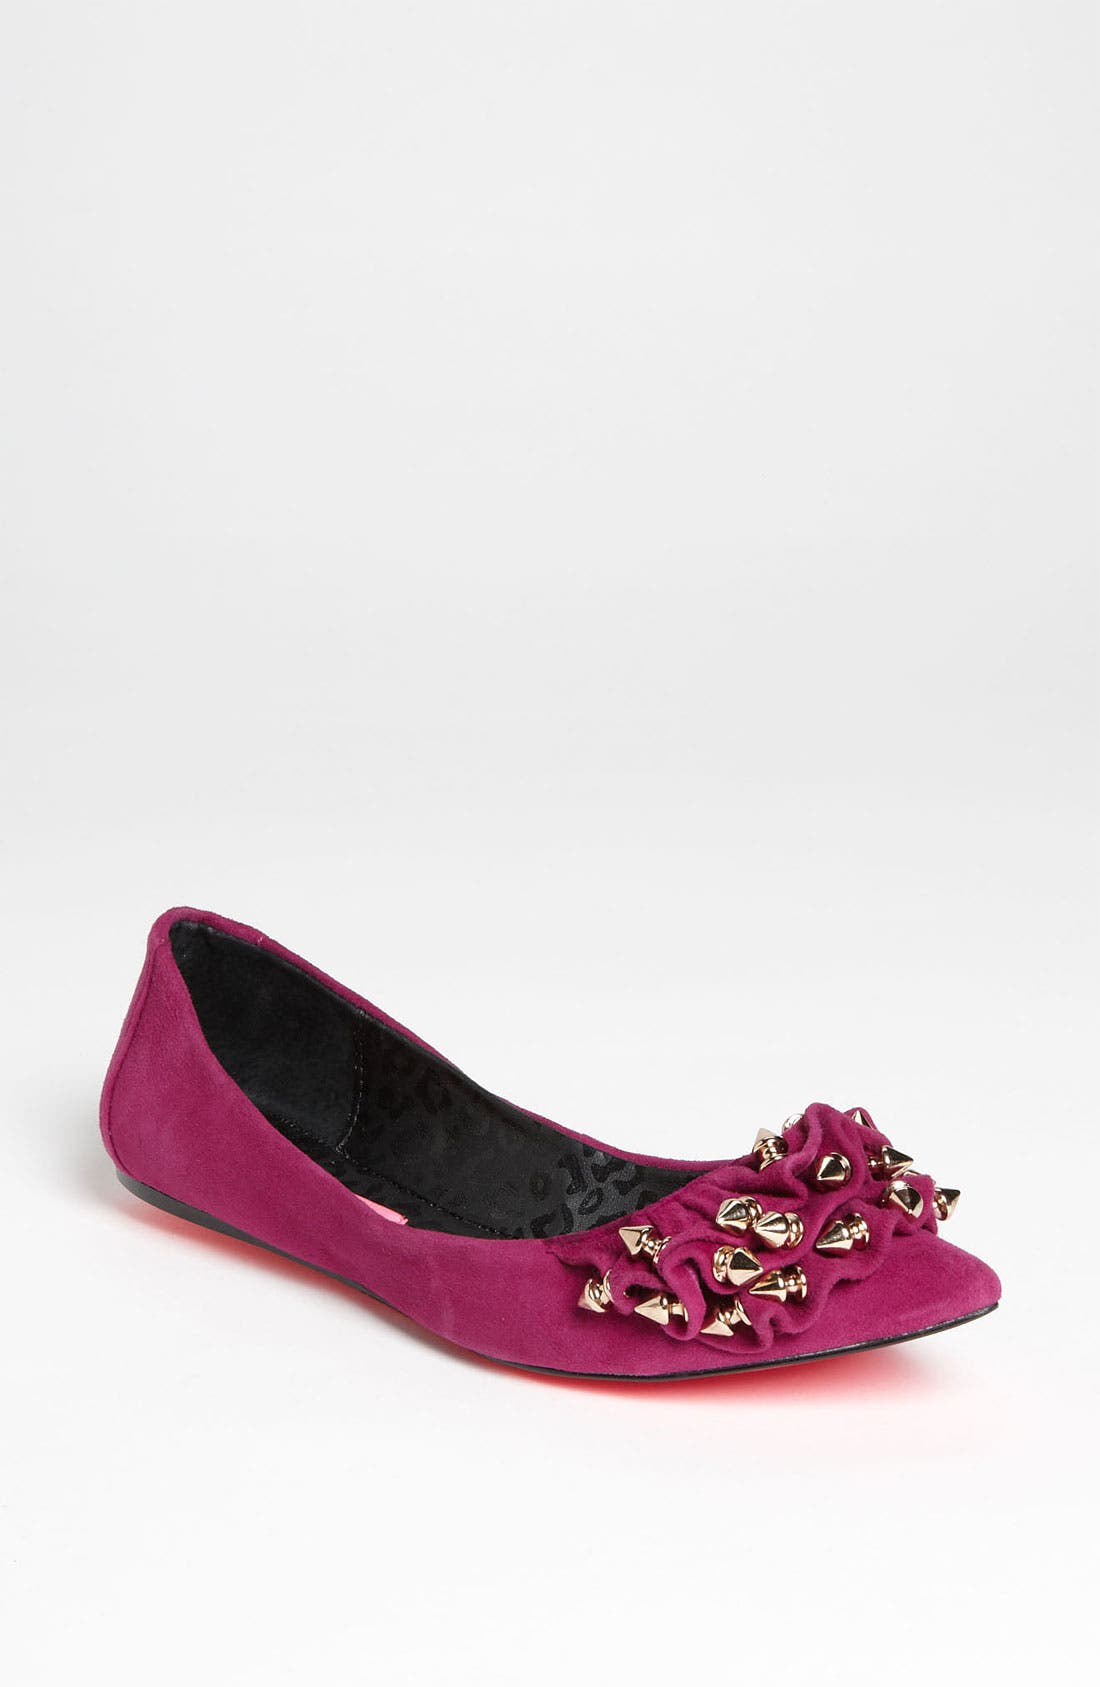 Main Image - Betsey Johnson 'Evve' Flat